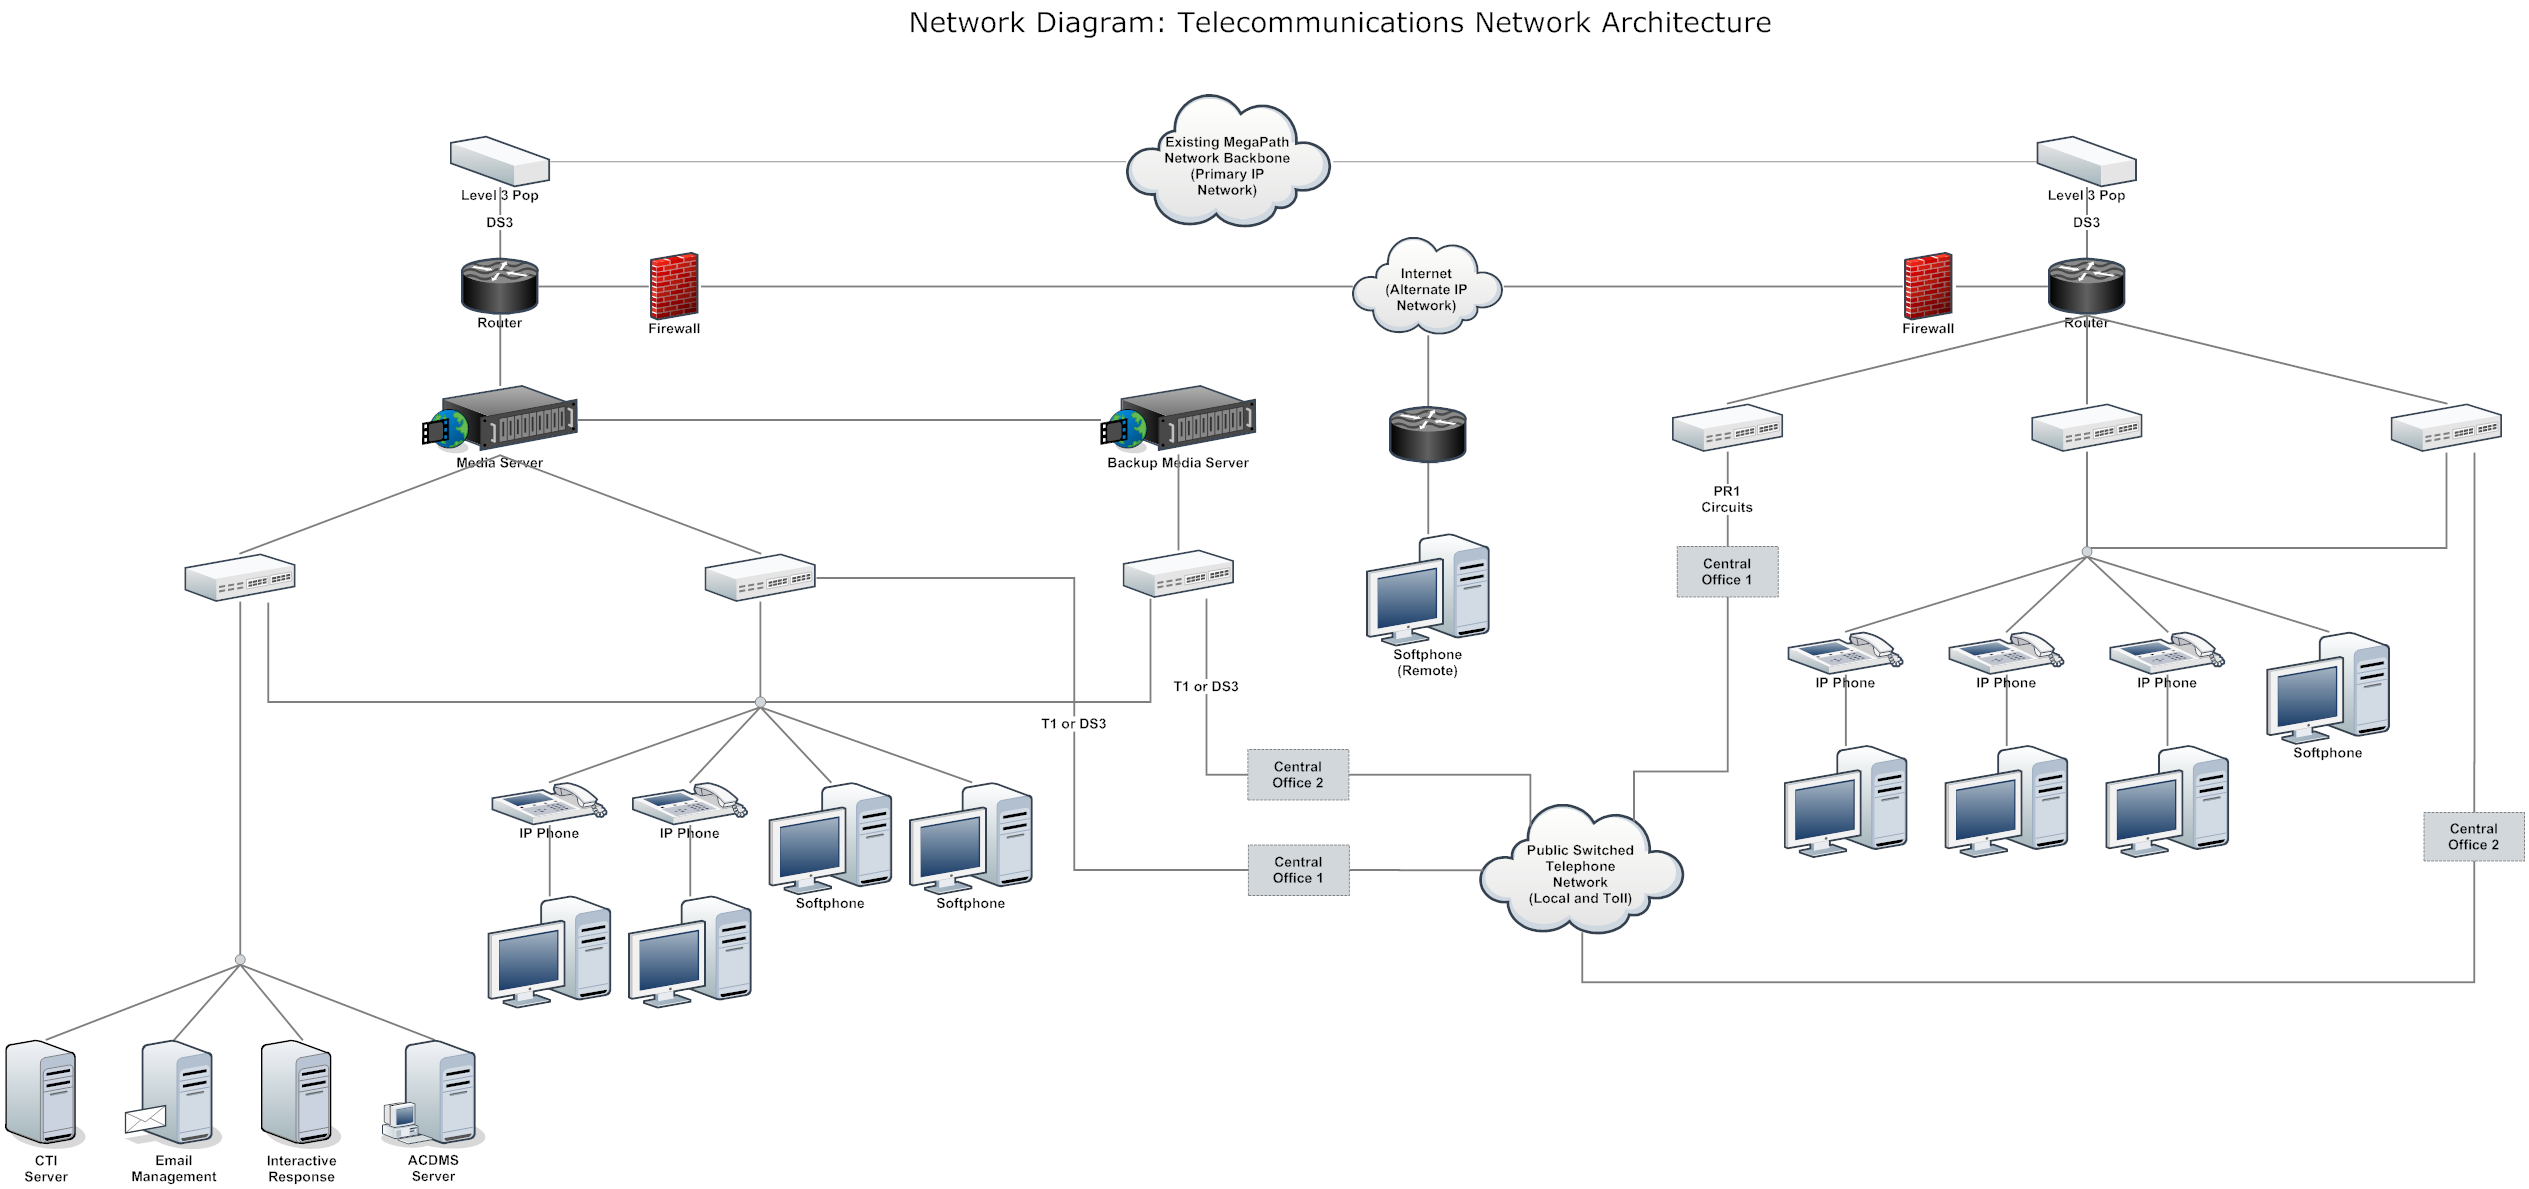 Network diagram example telecommunnications network architecture network diagrams Home wifi architecture